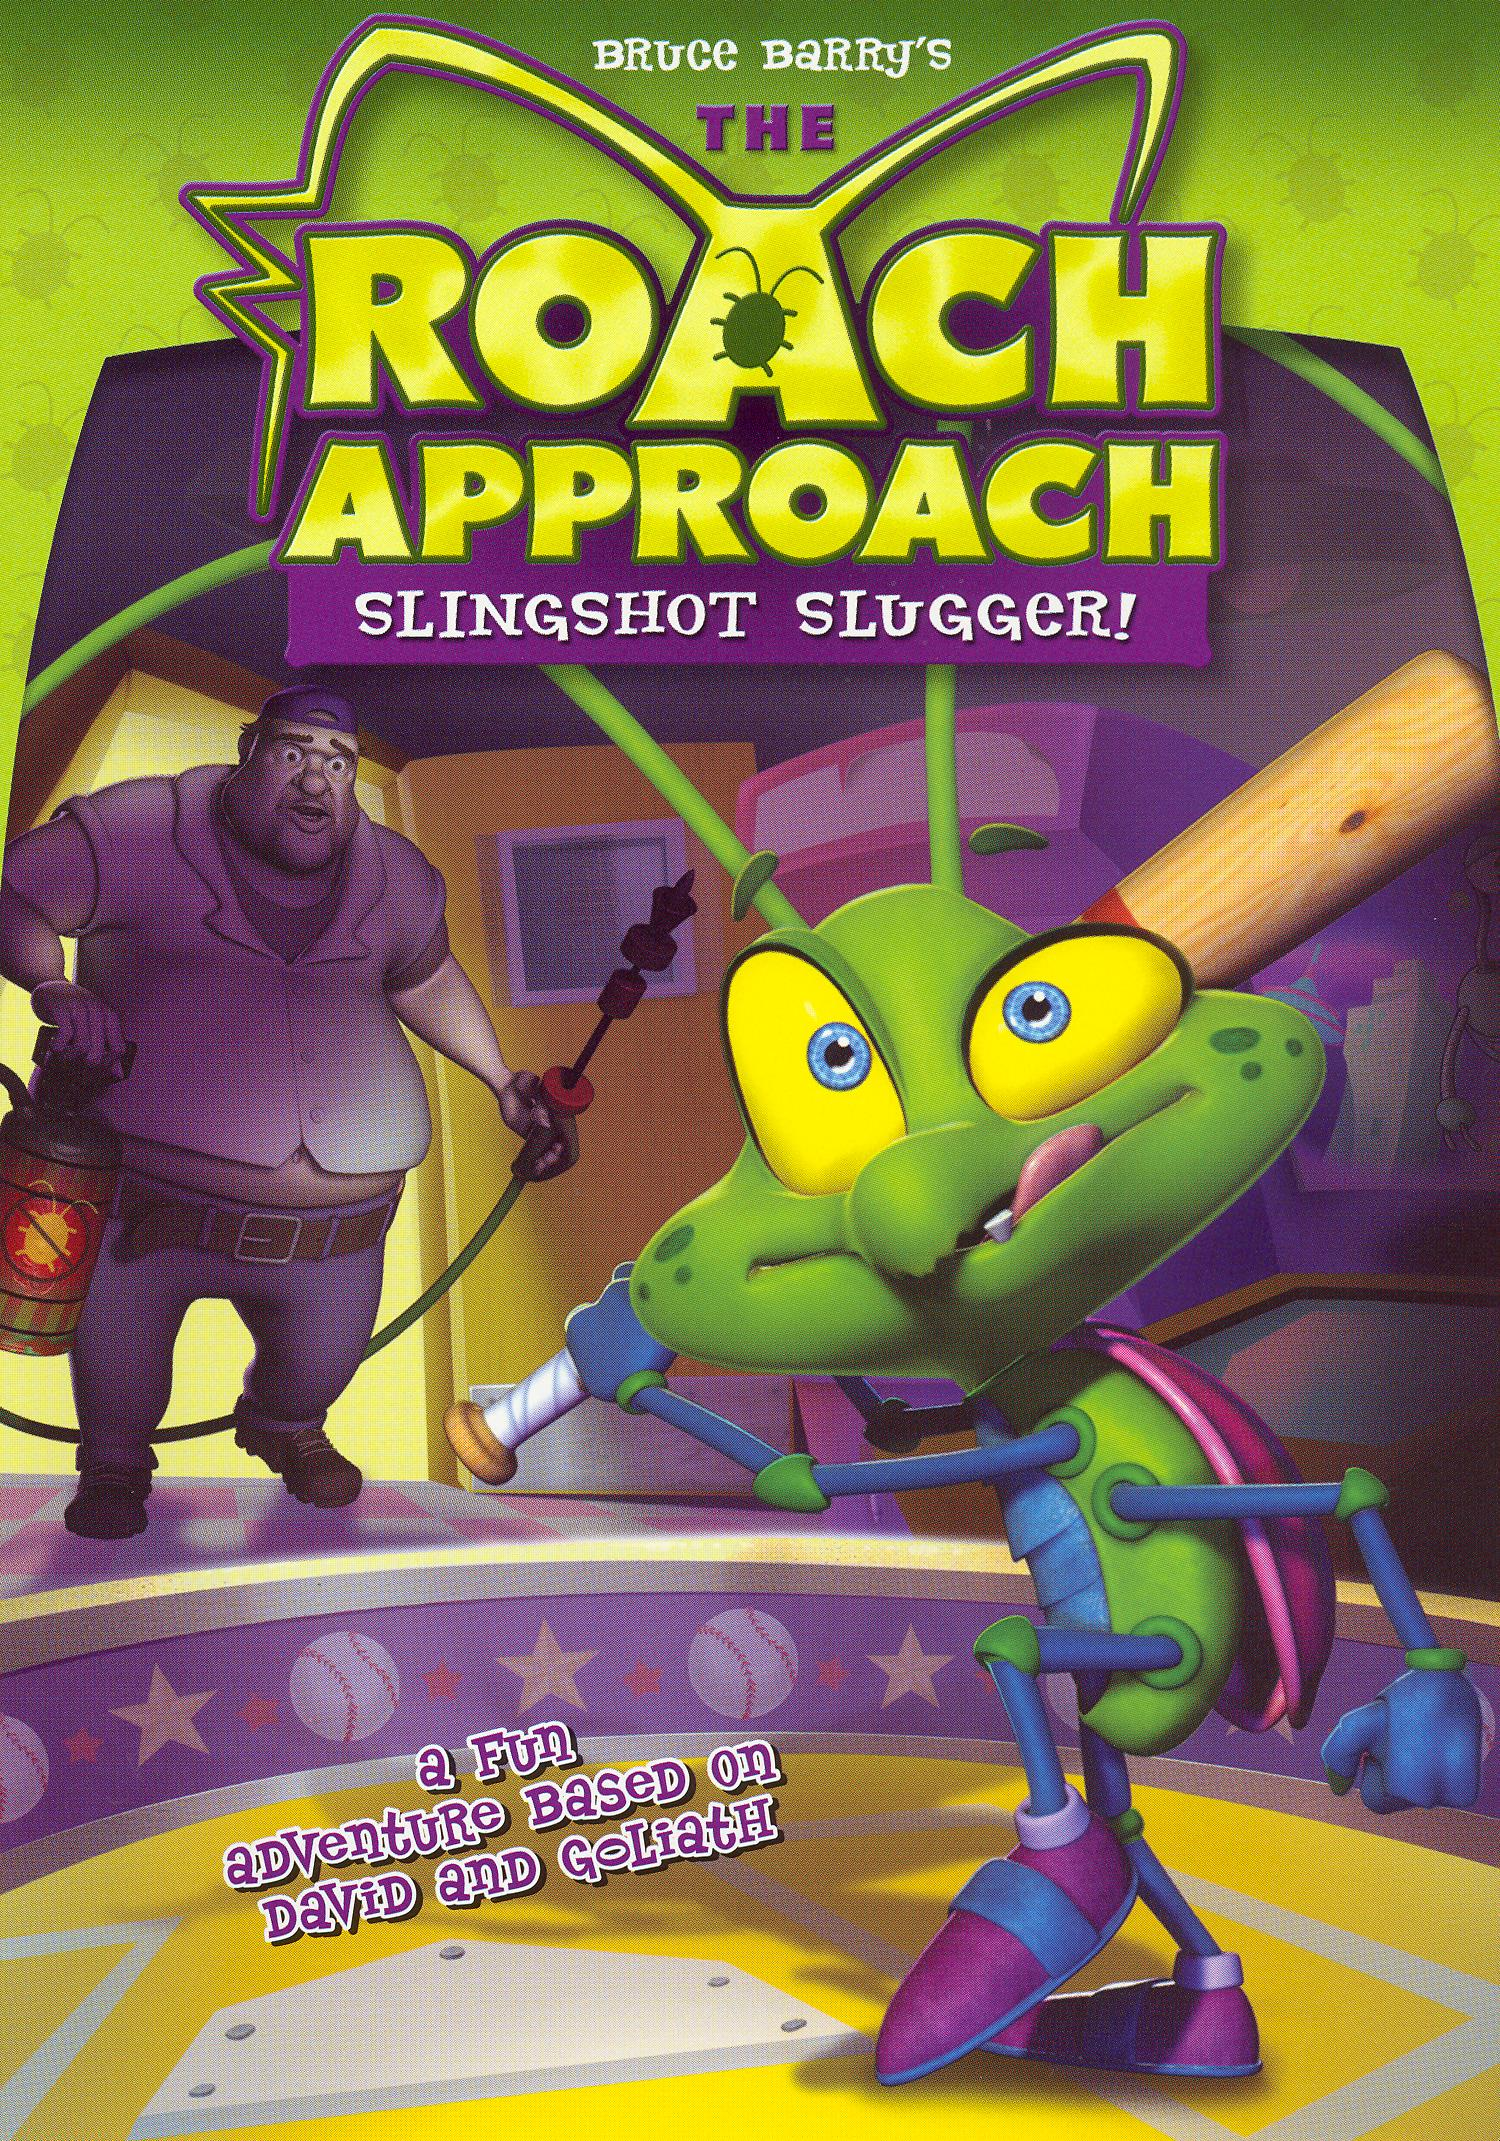 The Roach Approach: Slingshot Slugger!